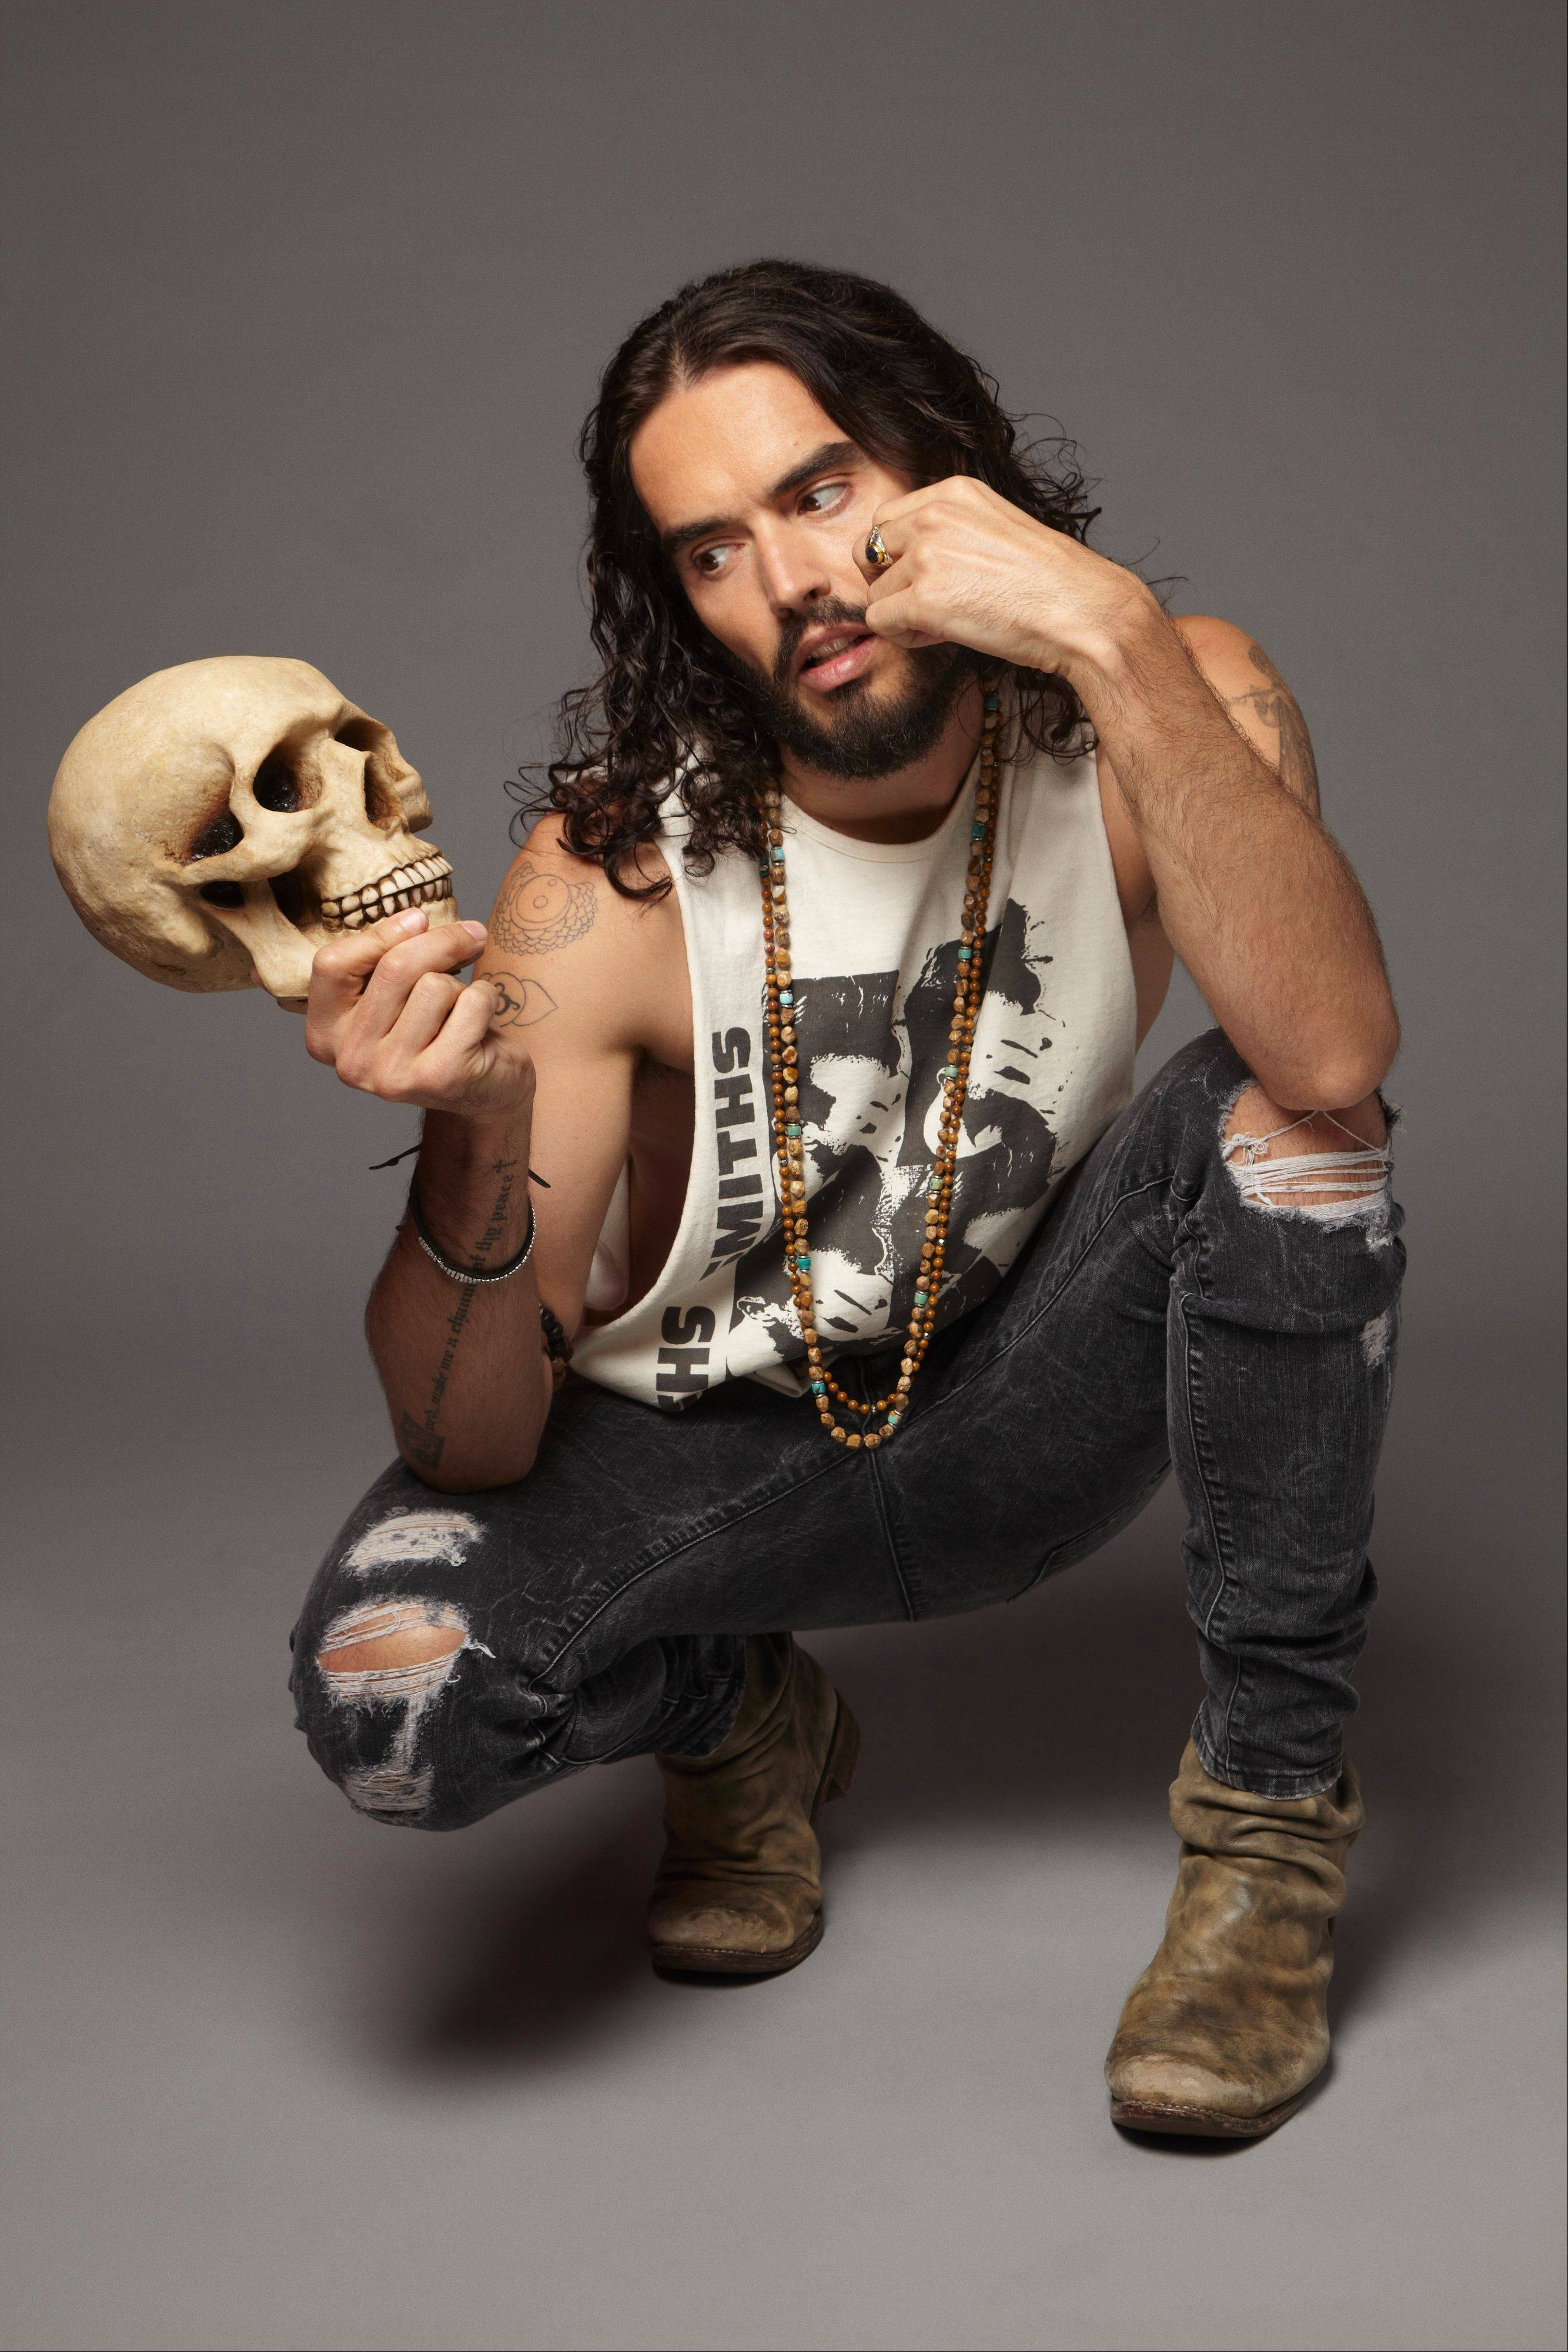 Russell Brand is one of the big names headed to town for the TBS Just for Laughs Chicago. He will be at the Chicago Theatre June 12.